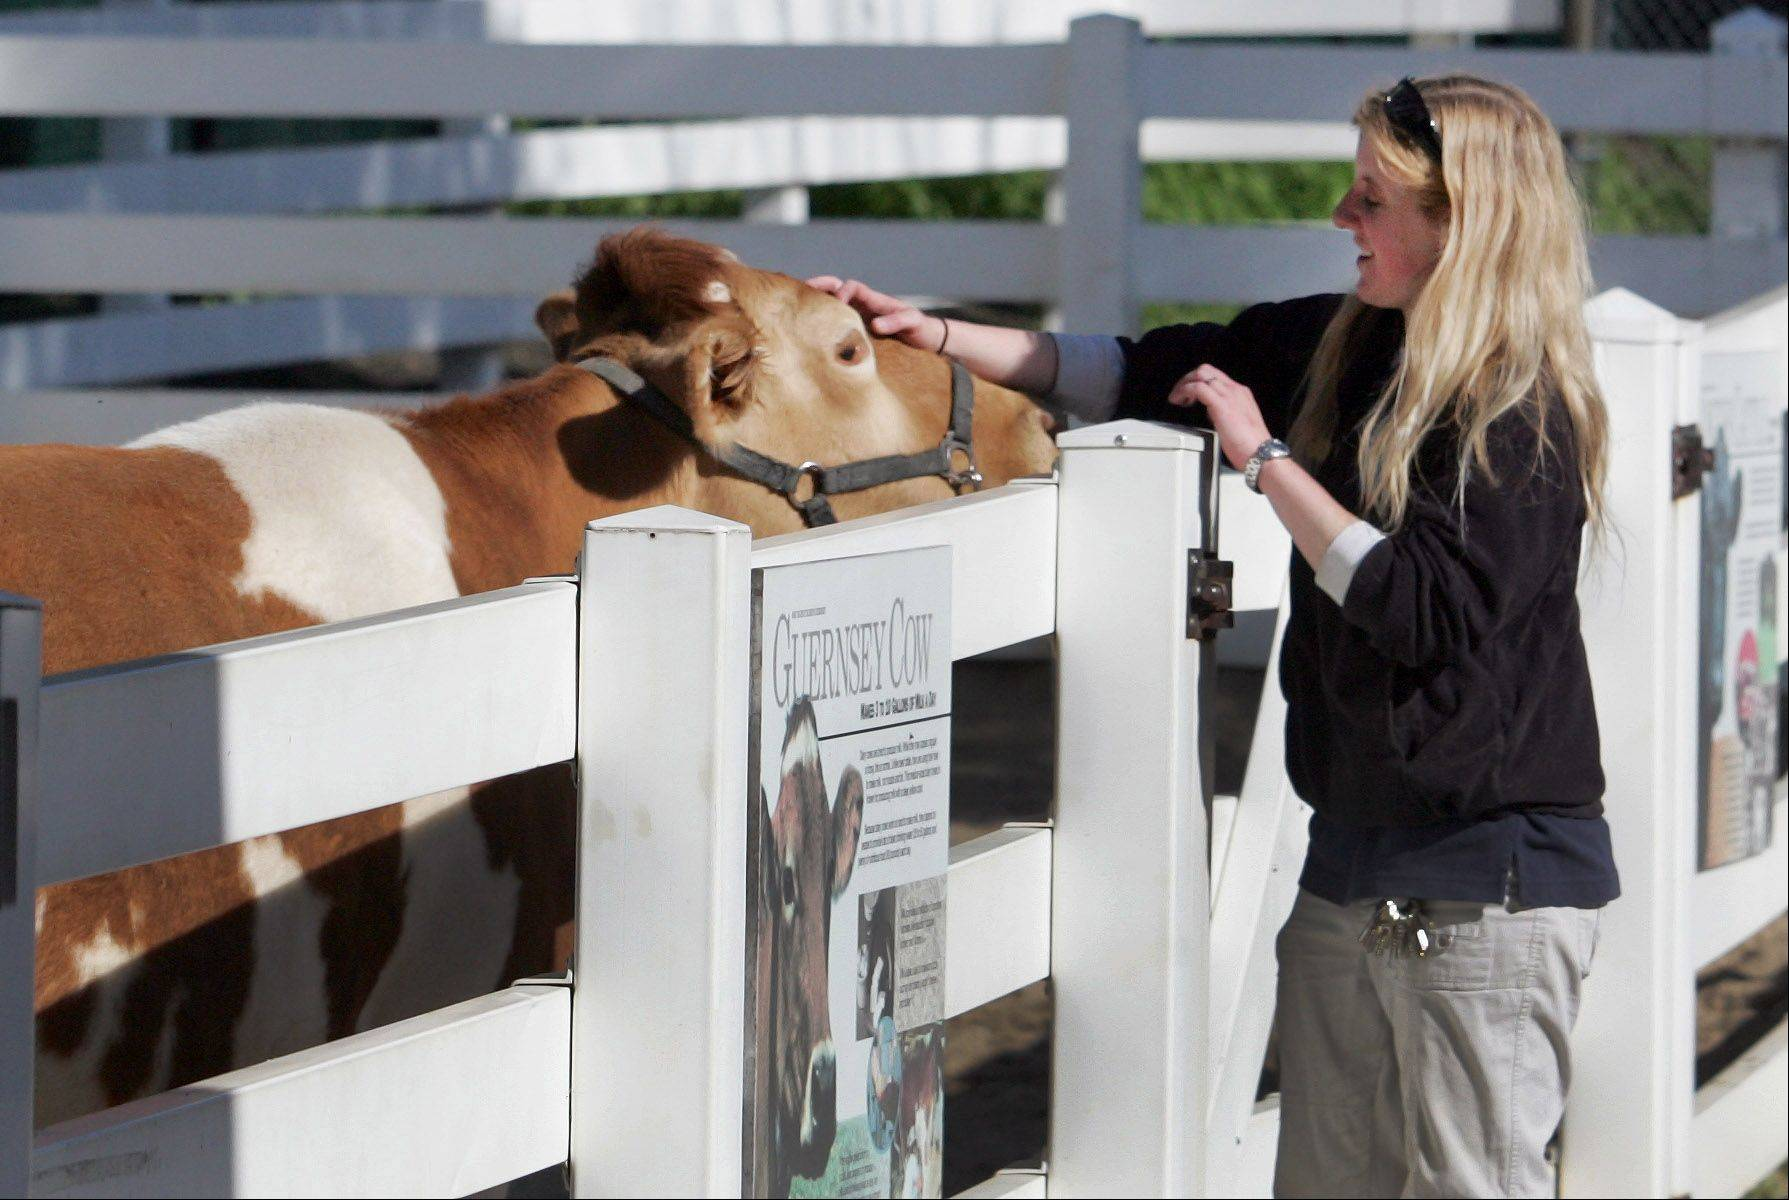 Lowe checks on a Guernsey cow, one of the newer animals to the zoo.